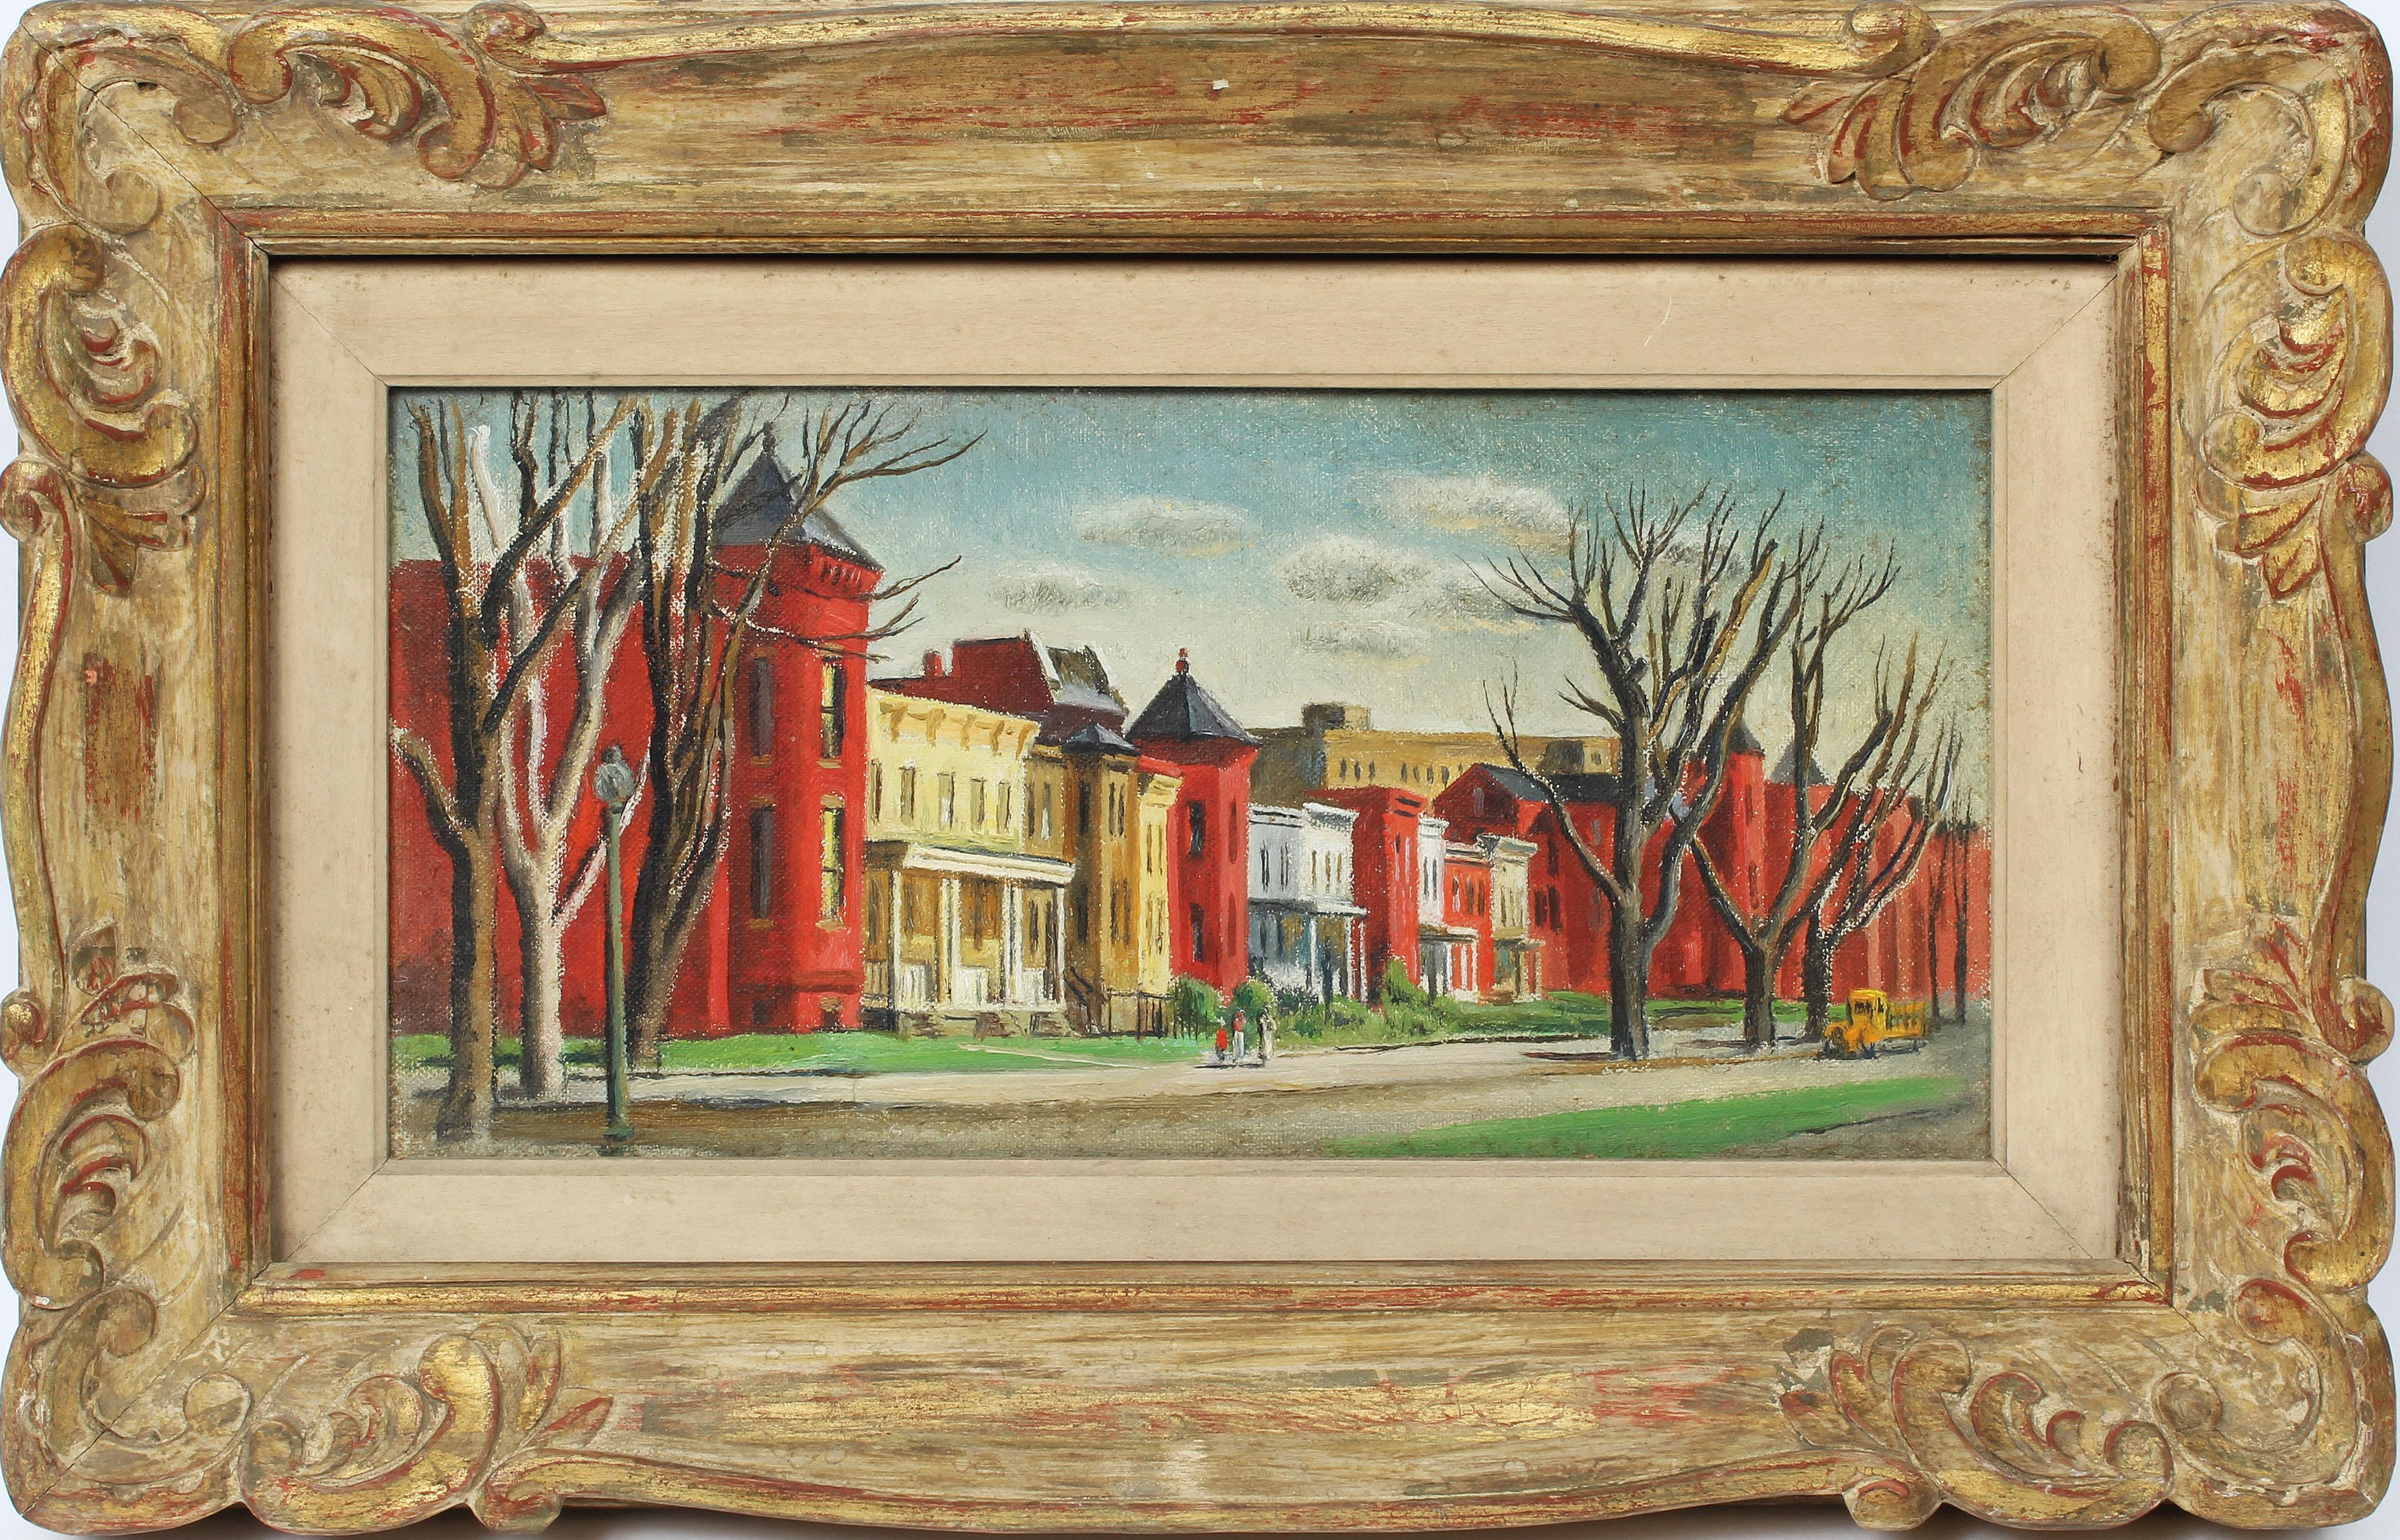 Antique American Female Impressionist New England Cityscape Signed Oil Painting